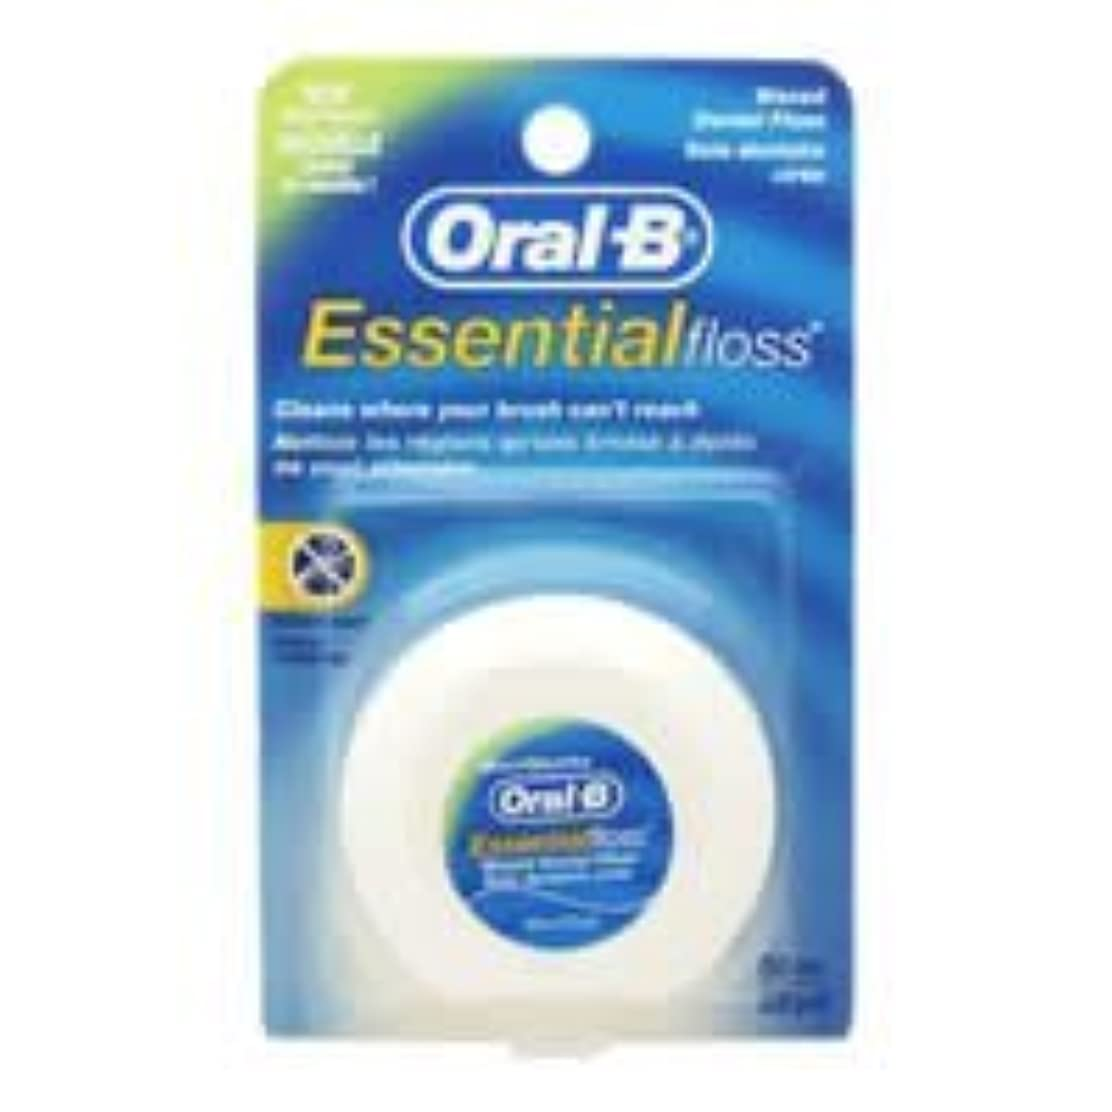 マーキング磨かれたフックOral-B Essential Waxed Dental Floss Mint by Oral-B